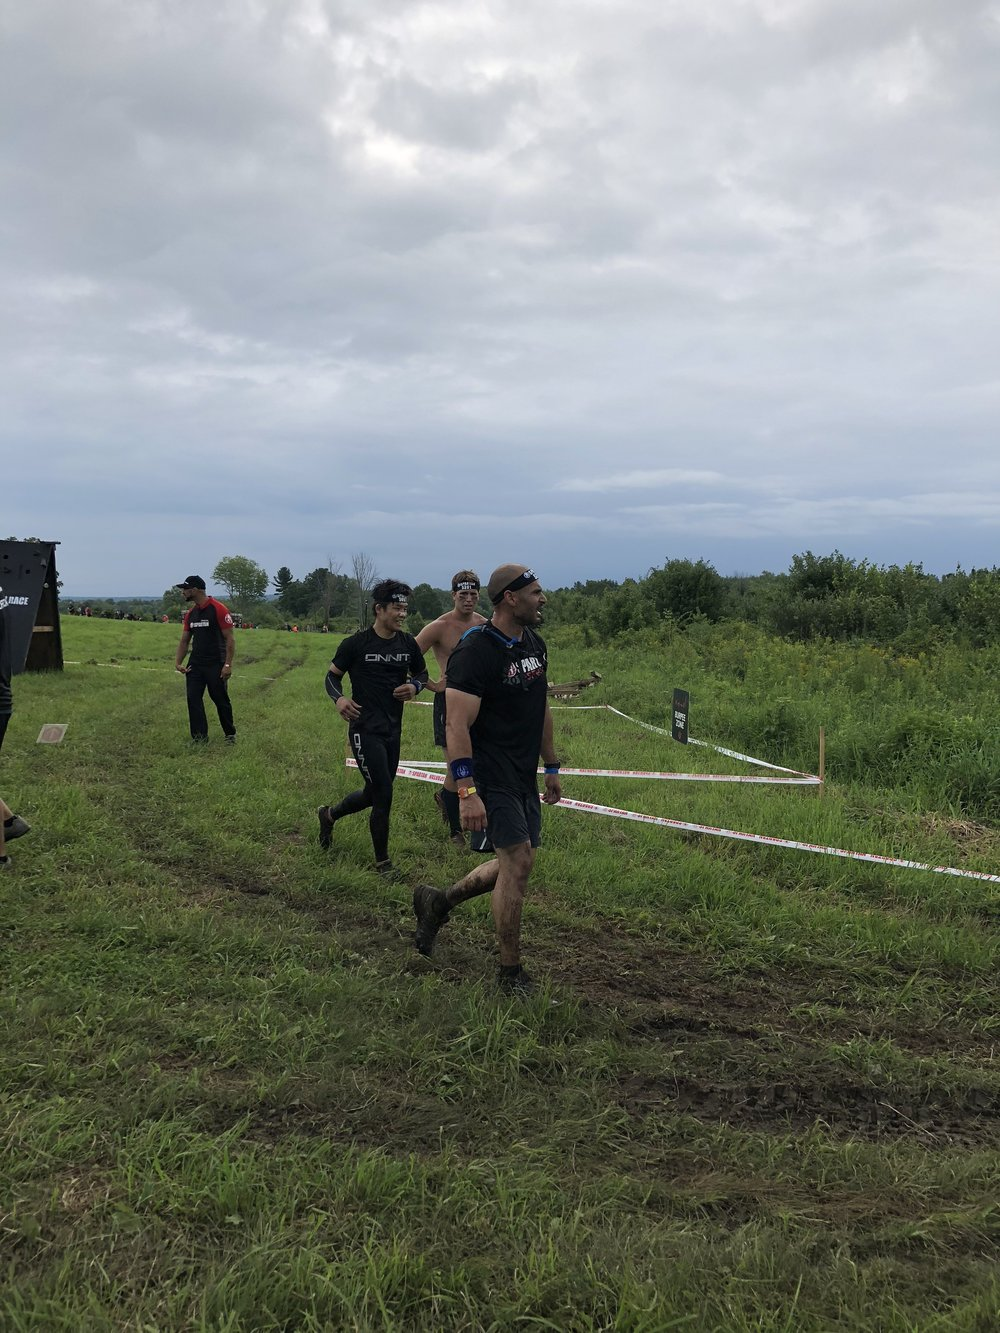 Run among obstacles